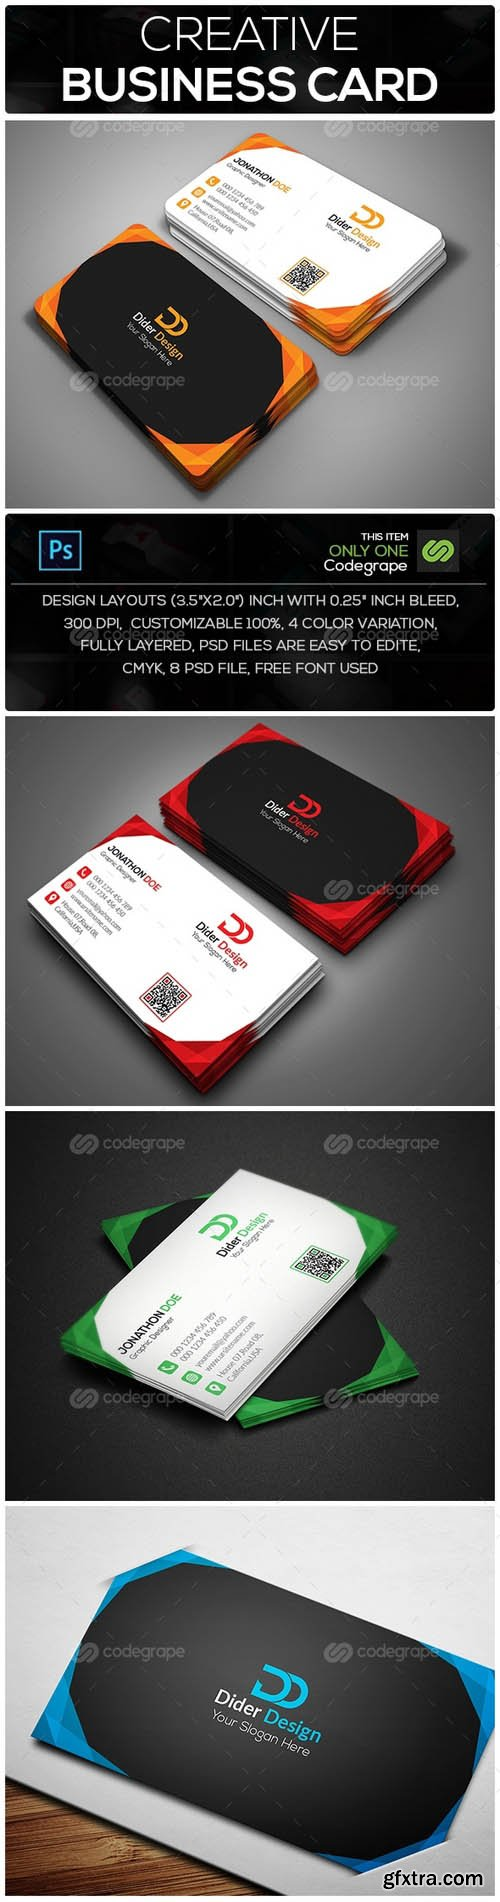 Vector photoshop psdafter effects tutorials template 3d page creative business card 8794 reheart Image collections